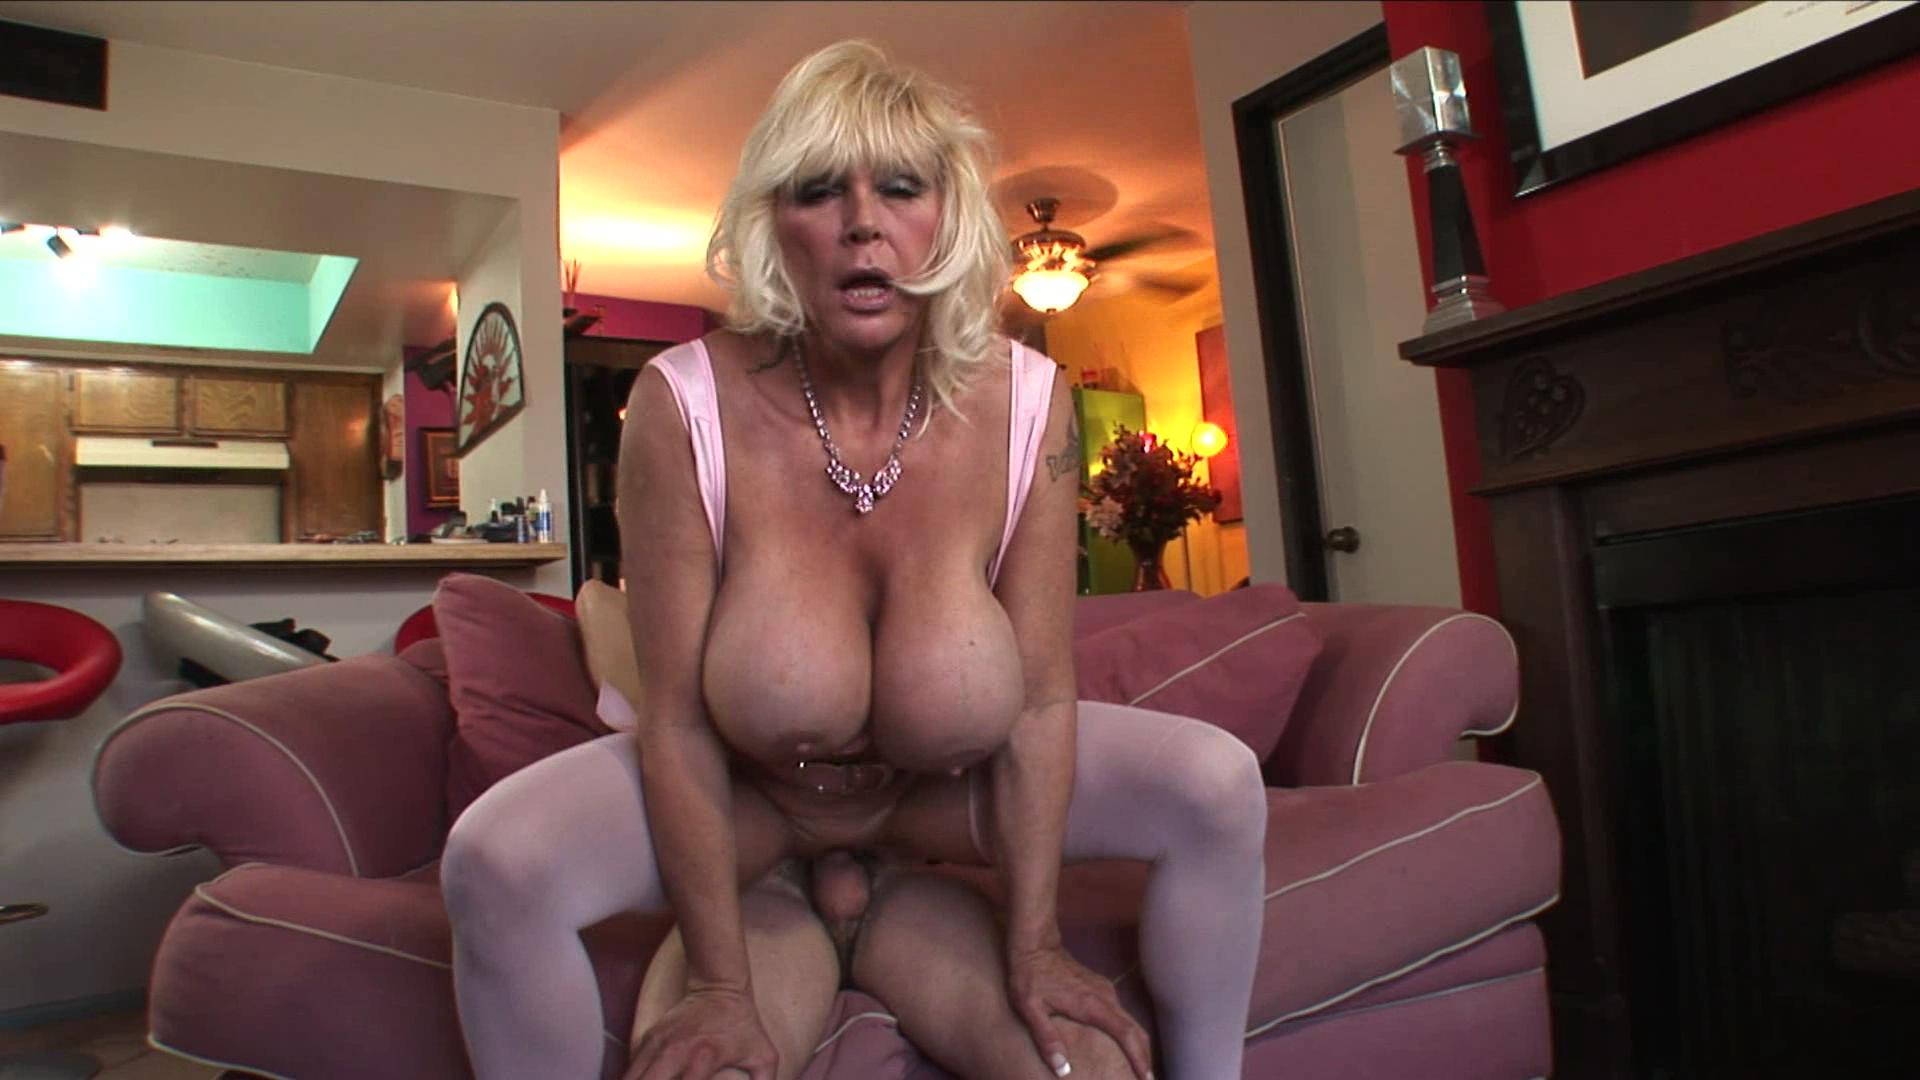 Old Granny Porn Films granny porn video » shelly » horny grannies love to fuck 2